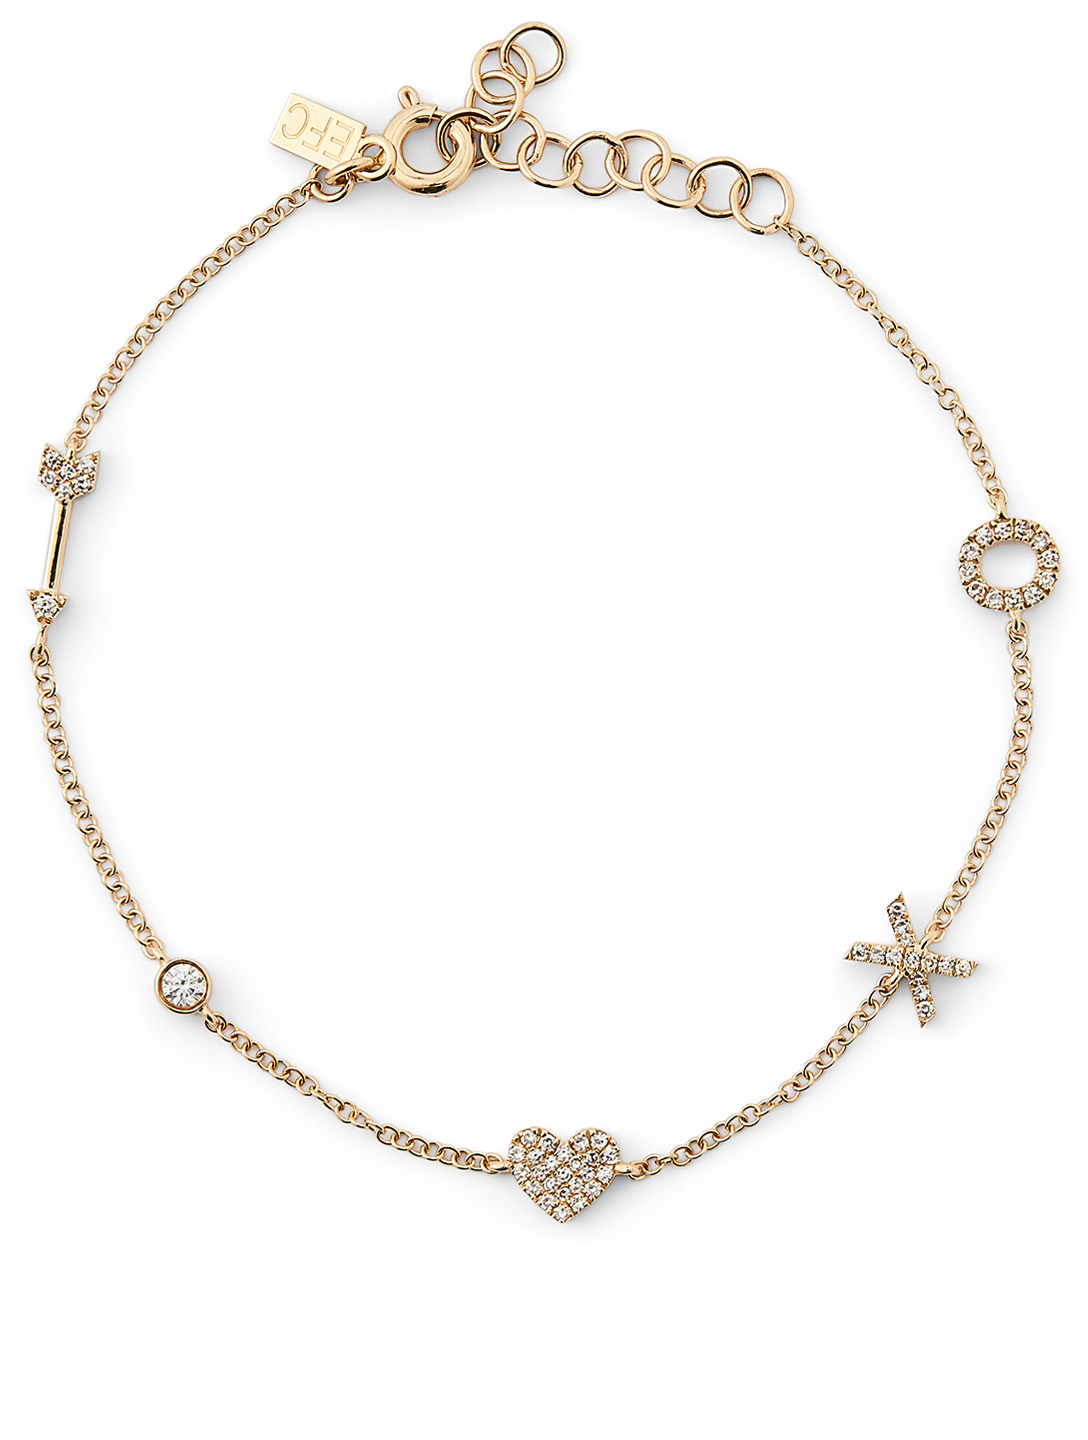 EF COLLECTION 14K Gold Sweetheart Charm Bracelet With Diamonds Women's Metallic